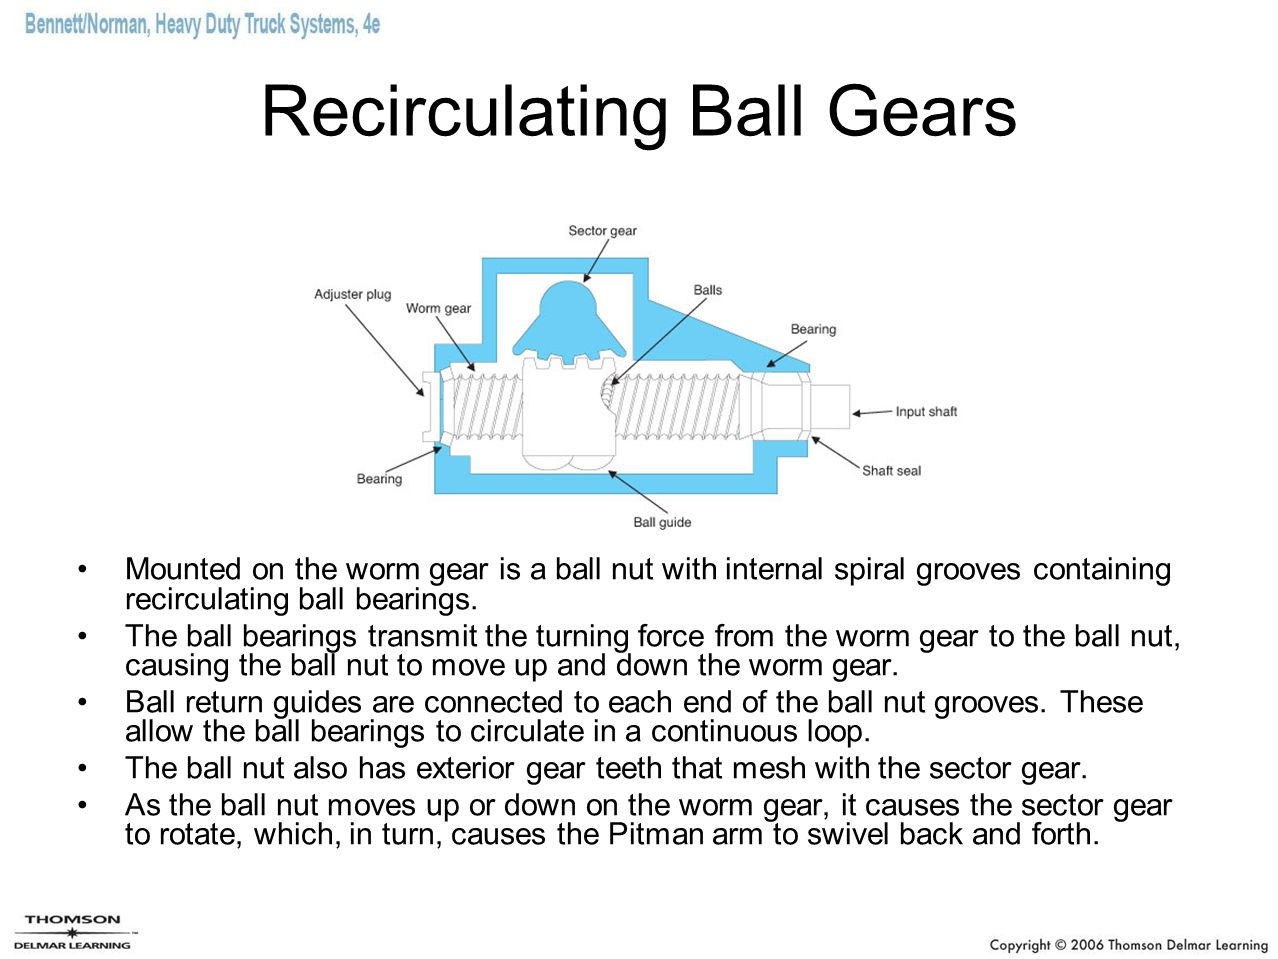 Recirculating Ball Gears